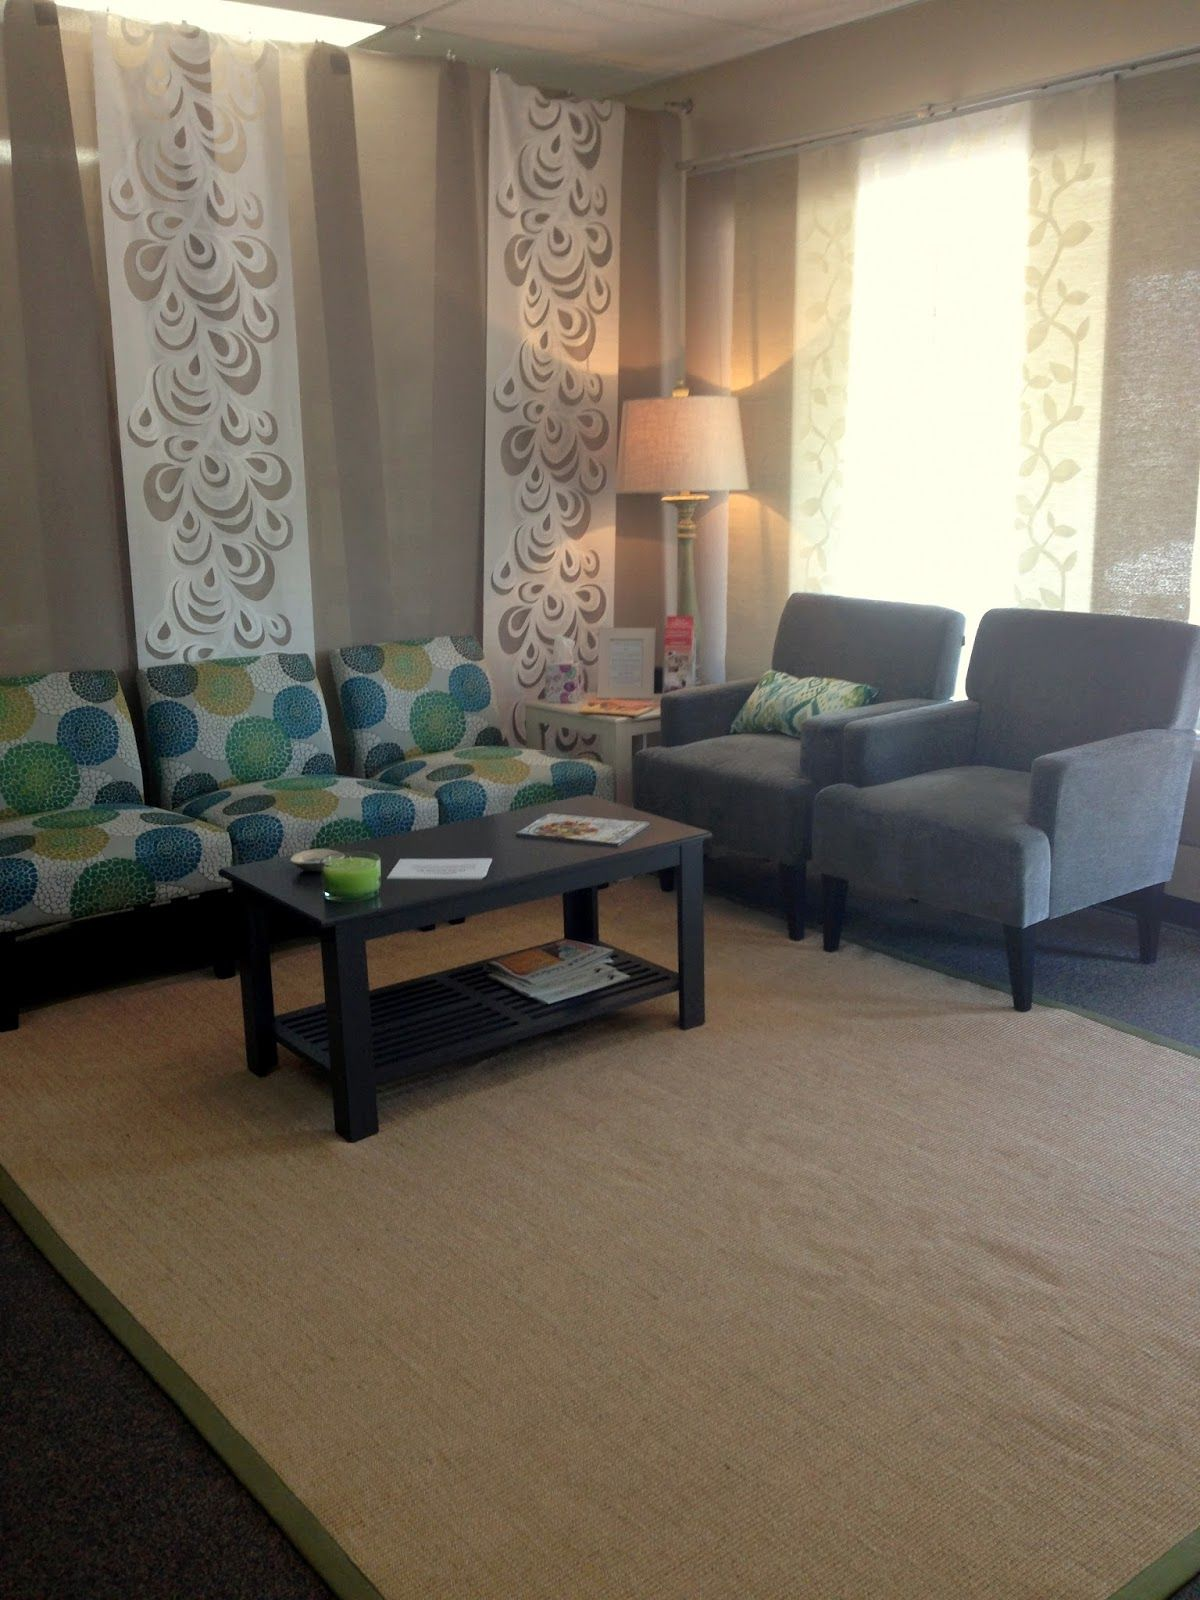 Jade star acupuncture in tucson lobby remodel with calming colors and relaxing atmosphere